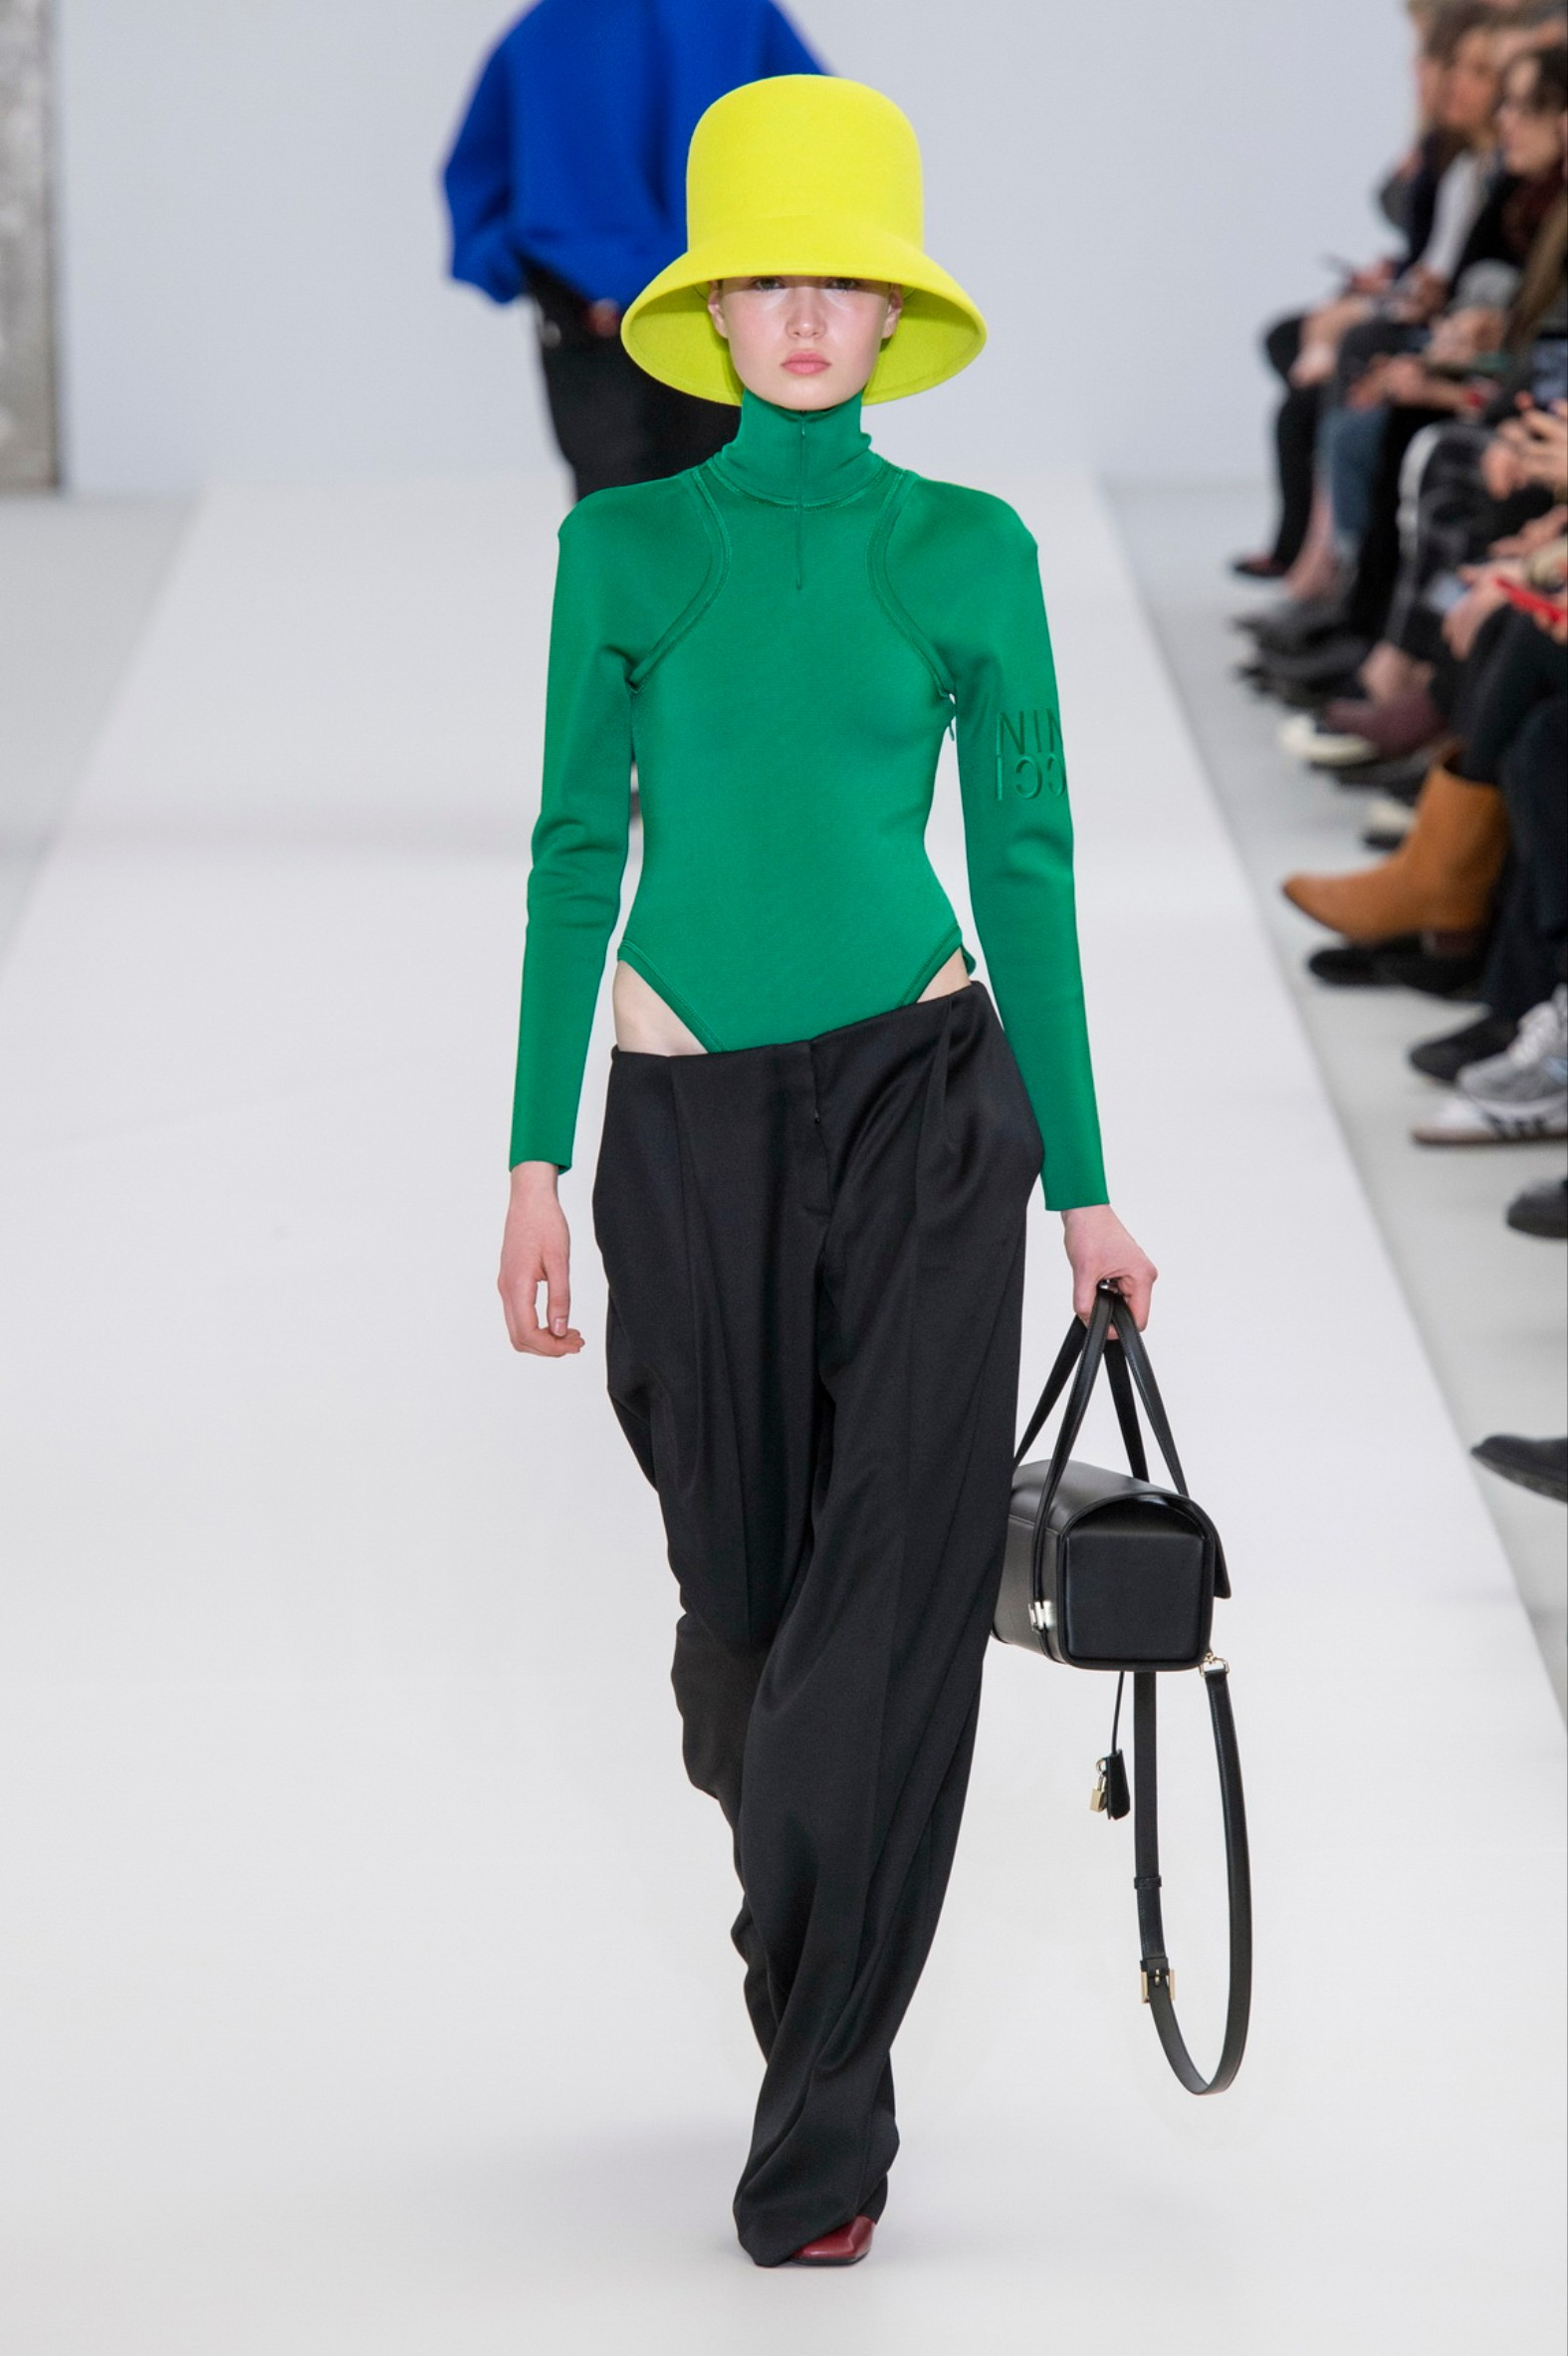 Visuel Silhouette Nina Ricci Athleisure - Tendances 2019 - Article blog ordinari.shop